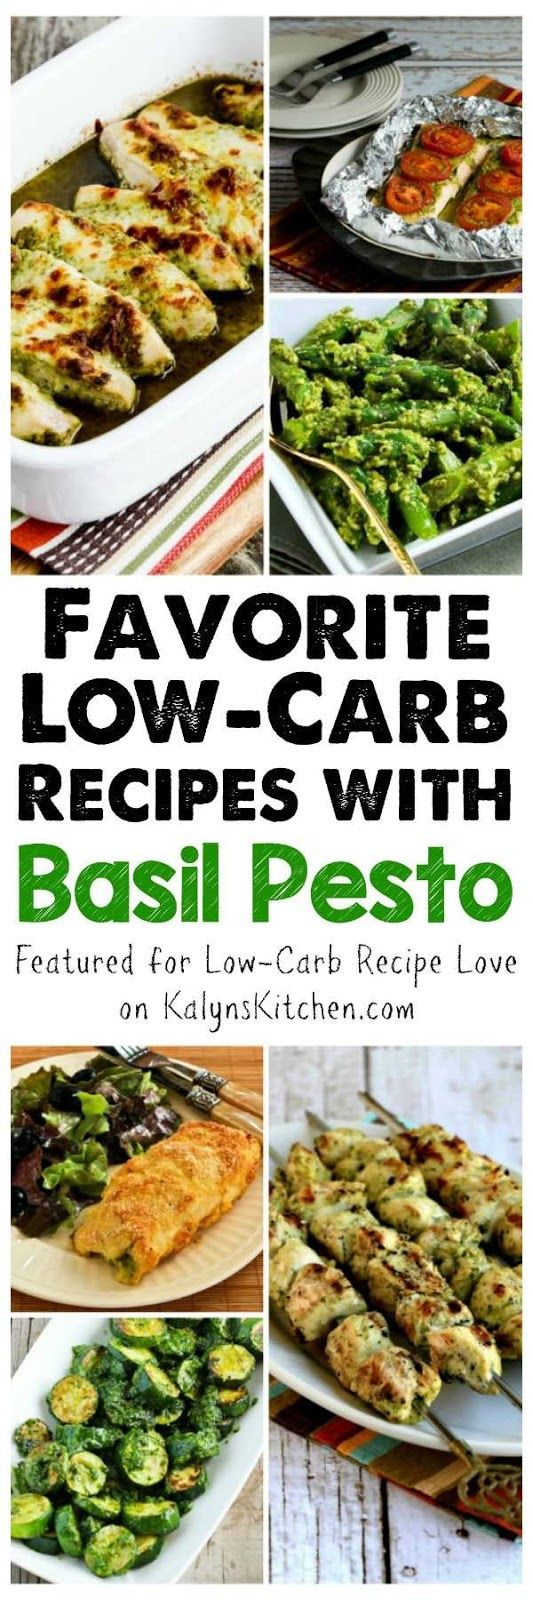 I'm featuring My Favorite Low-Carb Recipes with Pesto because basil is showing up in the stores and I still have pesto in the freezer from last summer. If you like to make pesto PIN NOW so you'll have these recipes when you have lots of basil, or use pesto from a jar to make them now!  [featured for Low-Carb Recipe Love on KalynsKitchen.com]